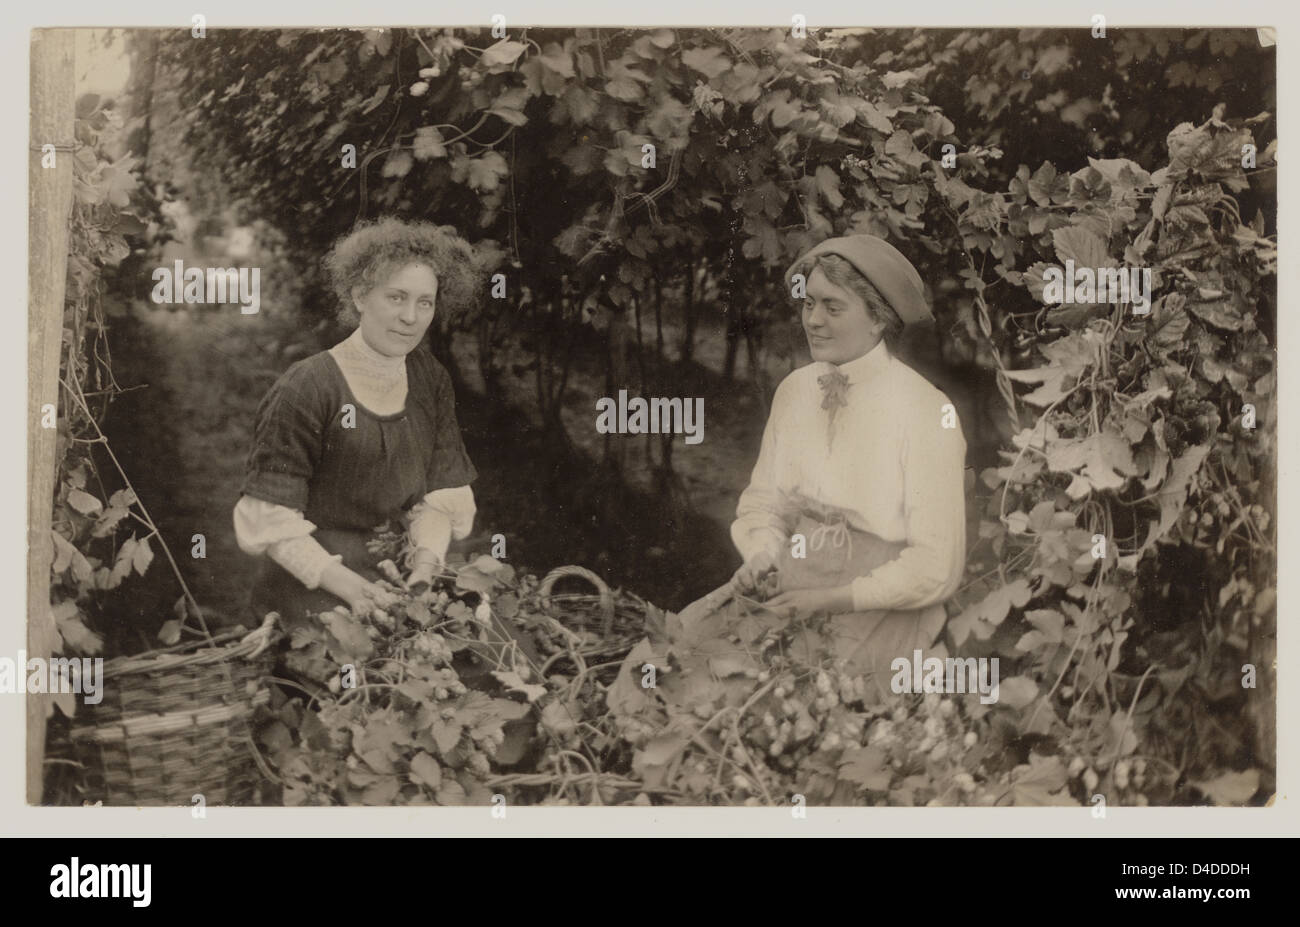 Two women hop picking, circa 1908, U.K. - Stock Image